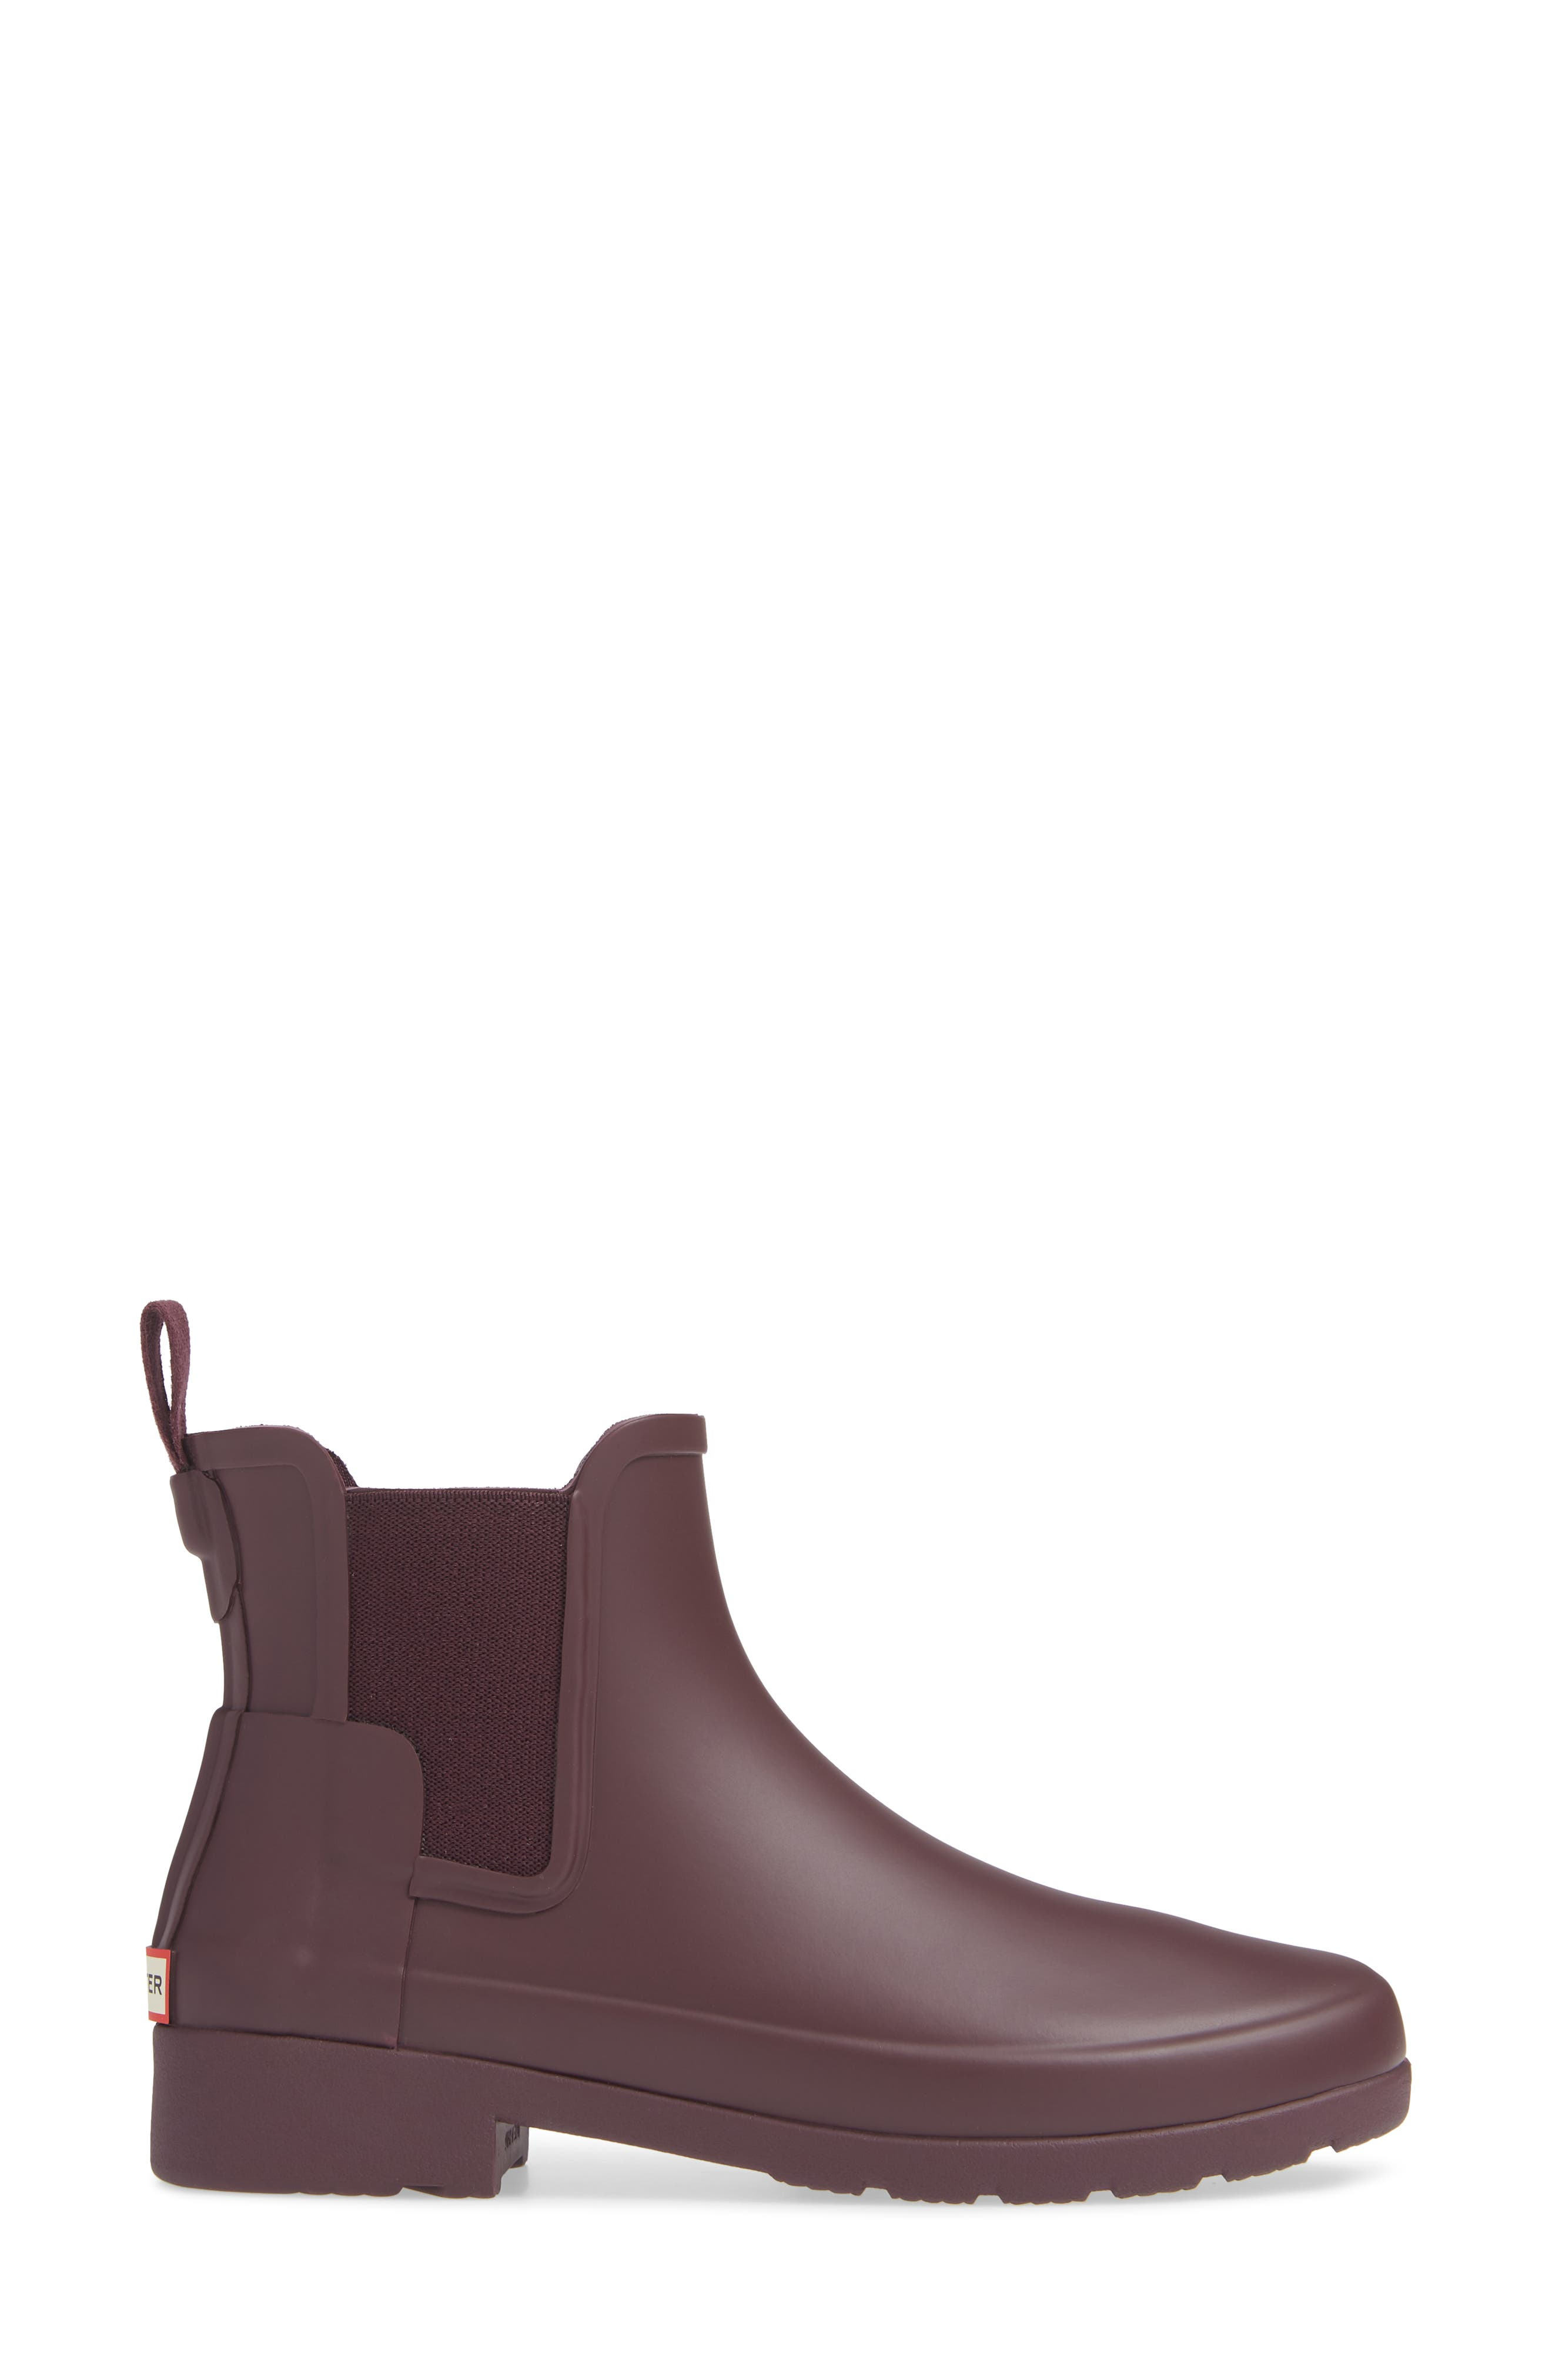 Refined Chelsea Boot,                             Alternate thumbnail 3, color,                             OXBLOOD